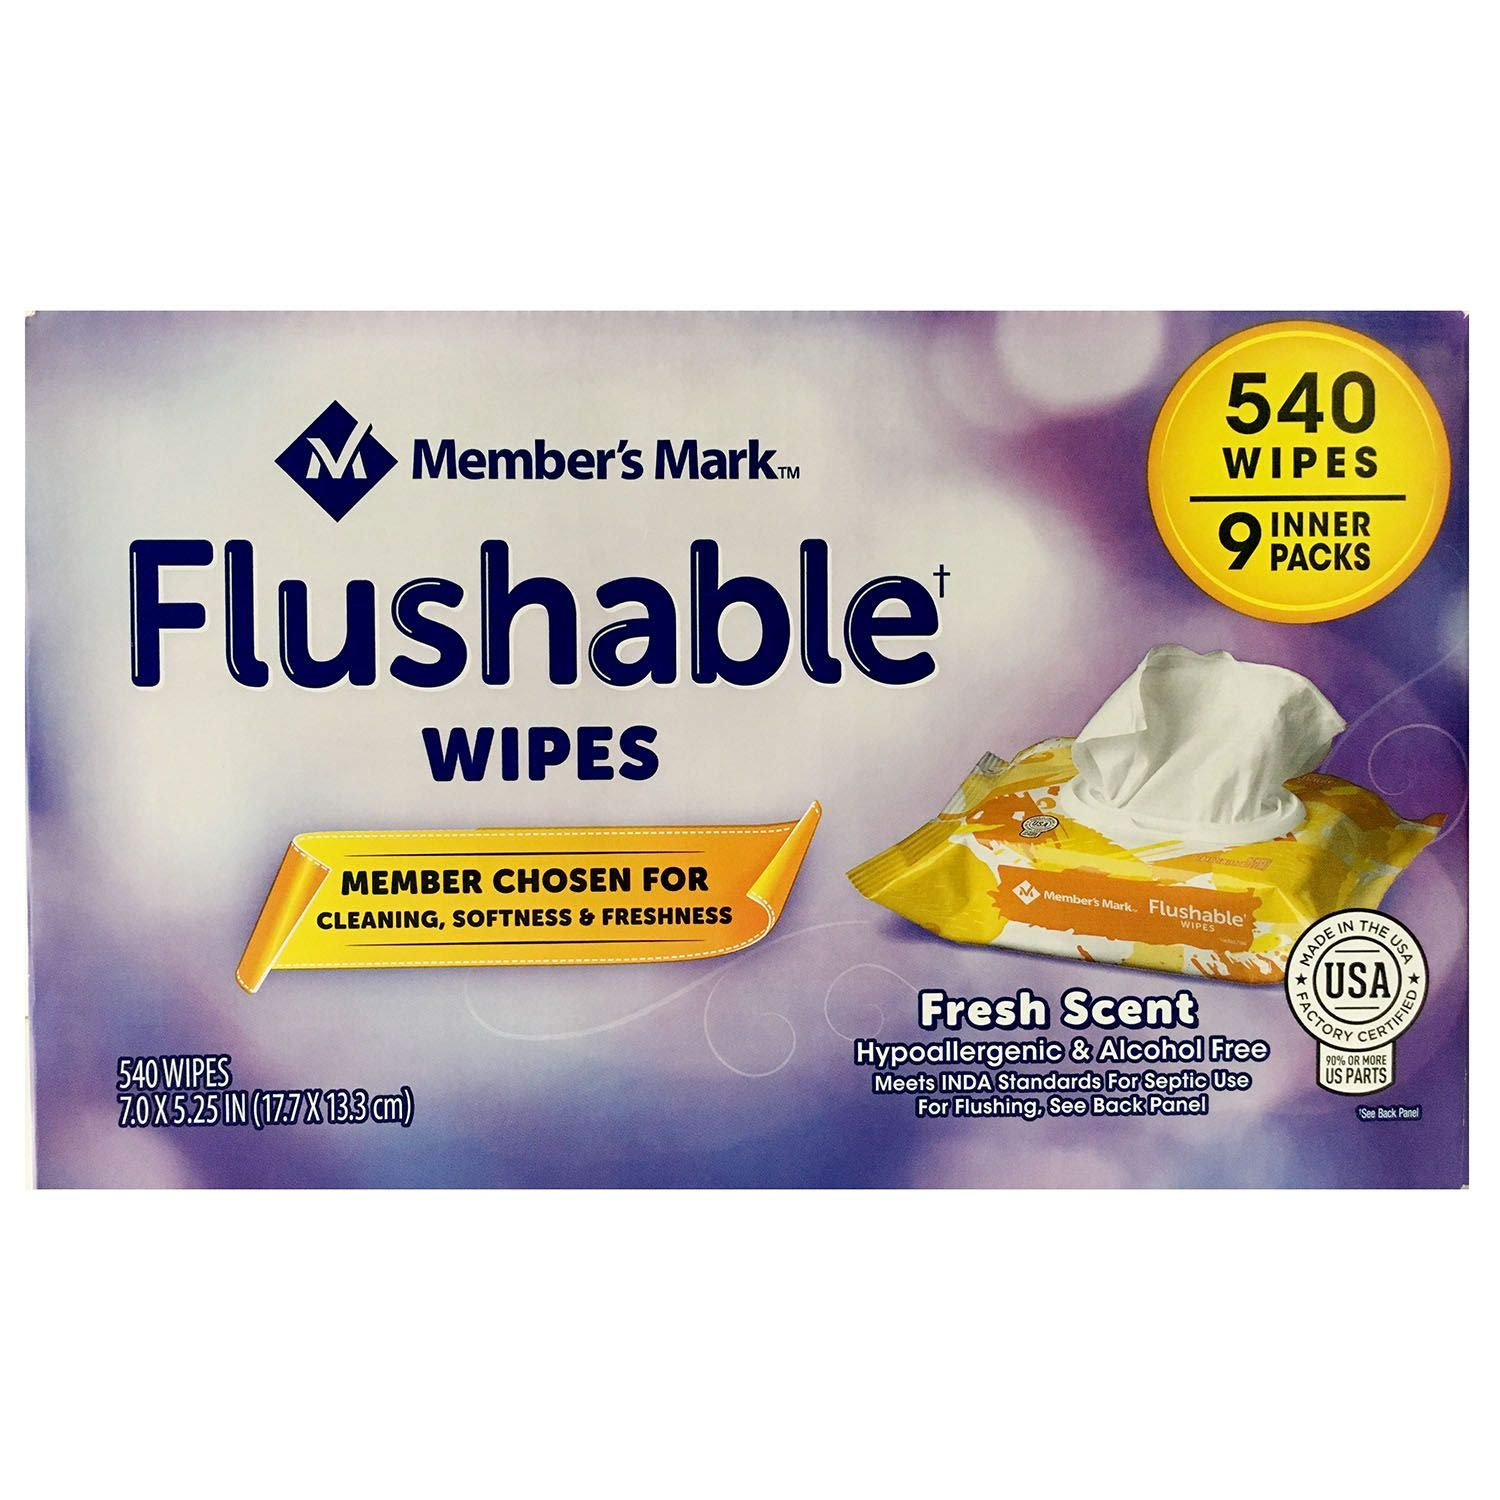 Member's Mark Flushable Wipes (9 pk, 540 wipes) (pack of 2) by Members Mark